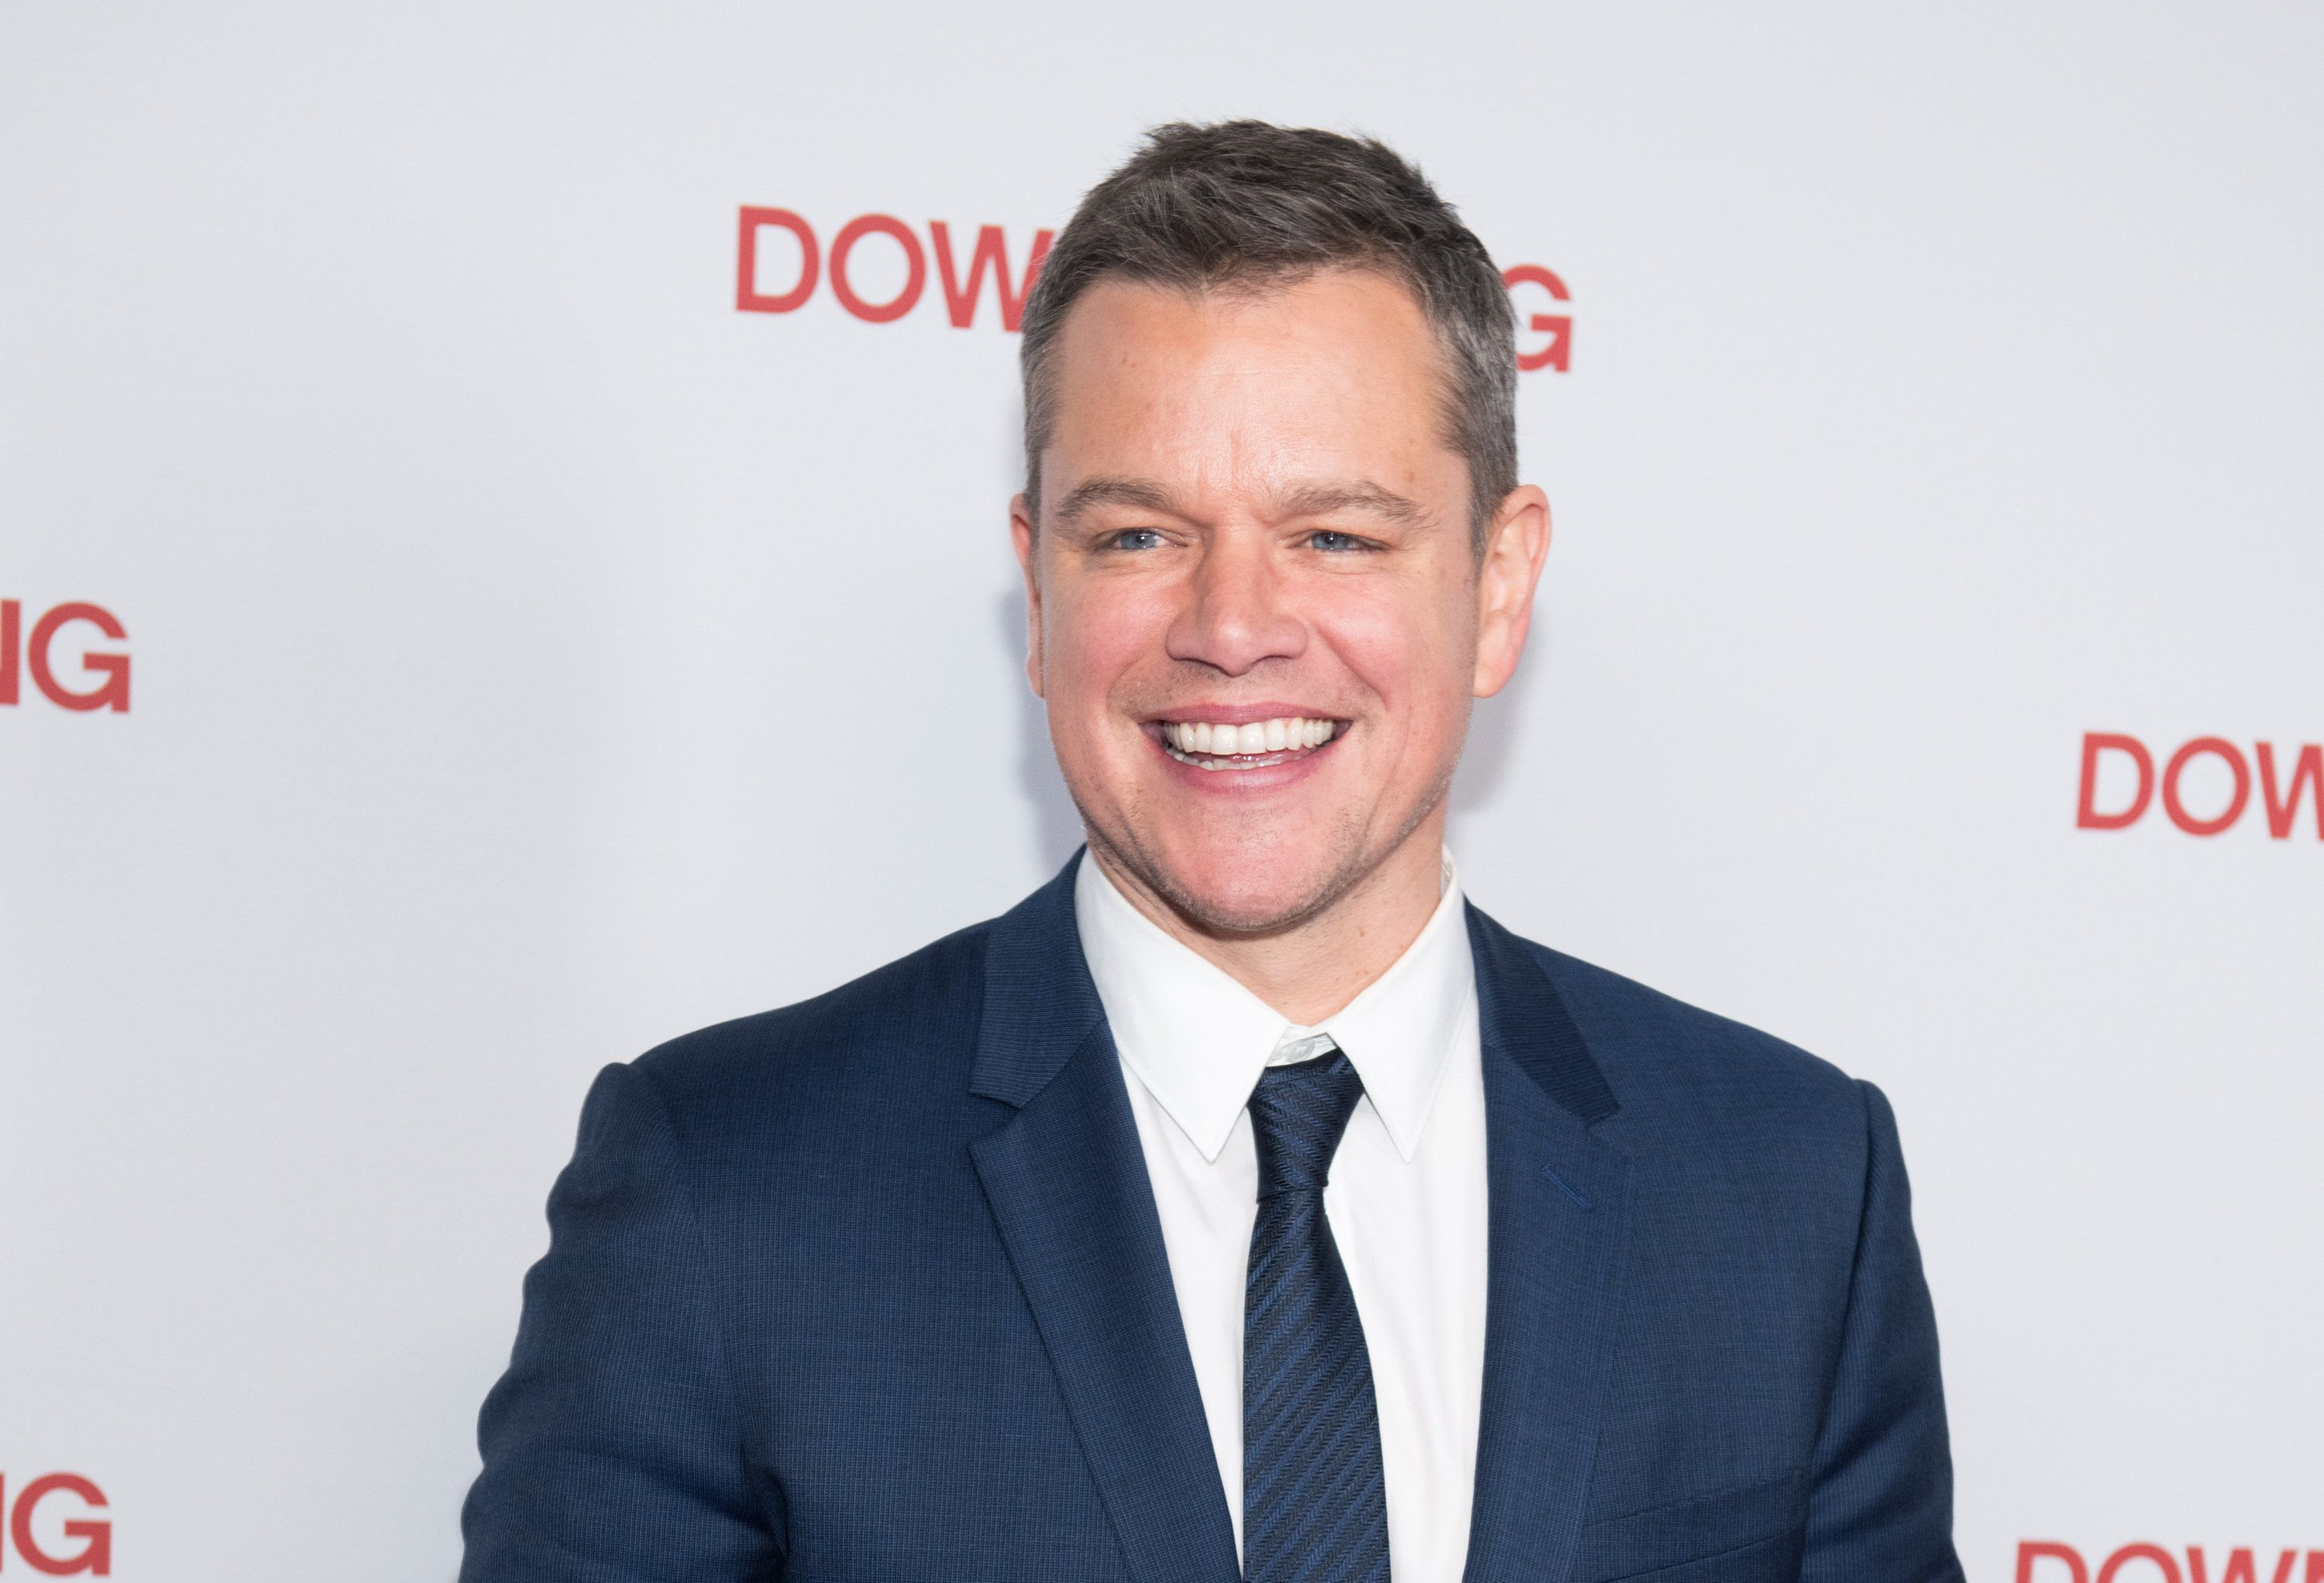 NEW YORK, NY - DECEMBER 11:  Actor Matt Damon attends the 'Downsizing' New York screening at AMC Lincoln Square Theater on December 11, 2017 in New York City.  (Photo by Noam Galai/WireImage)